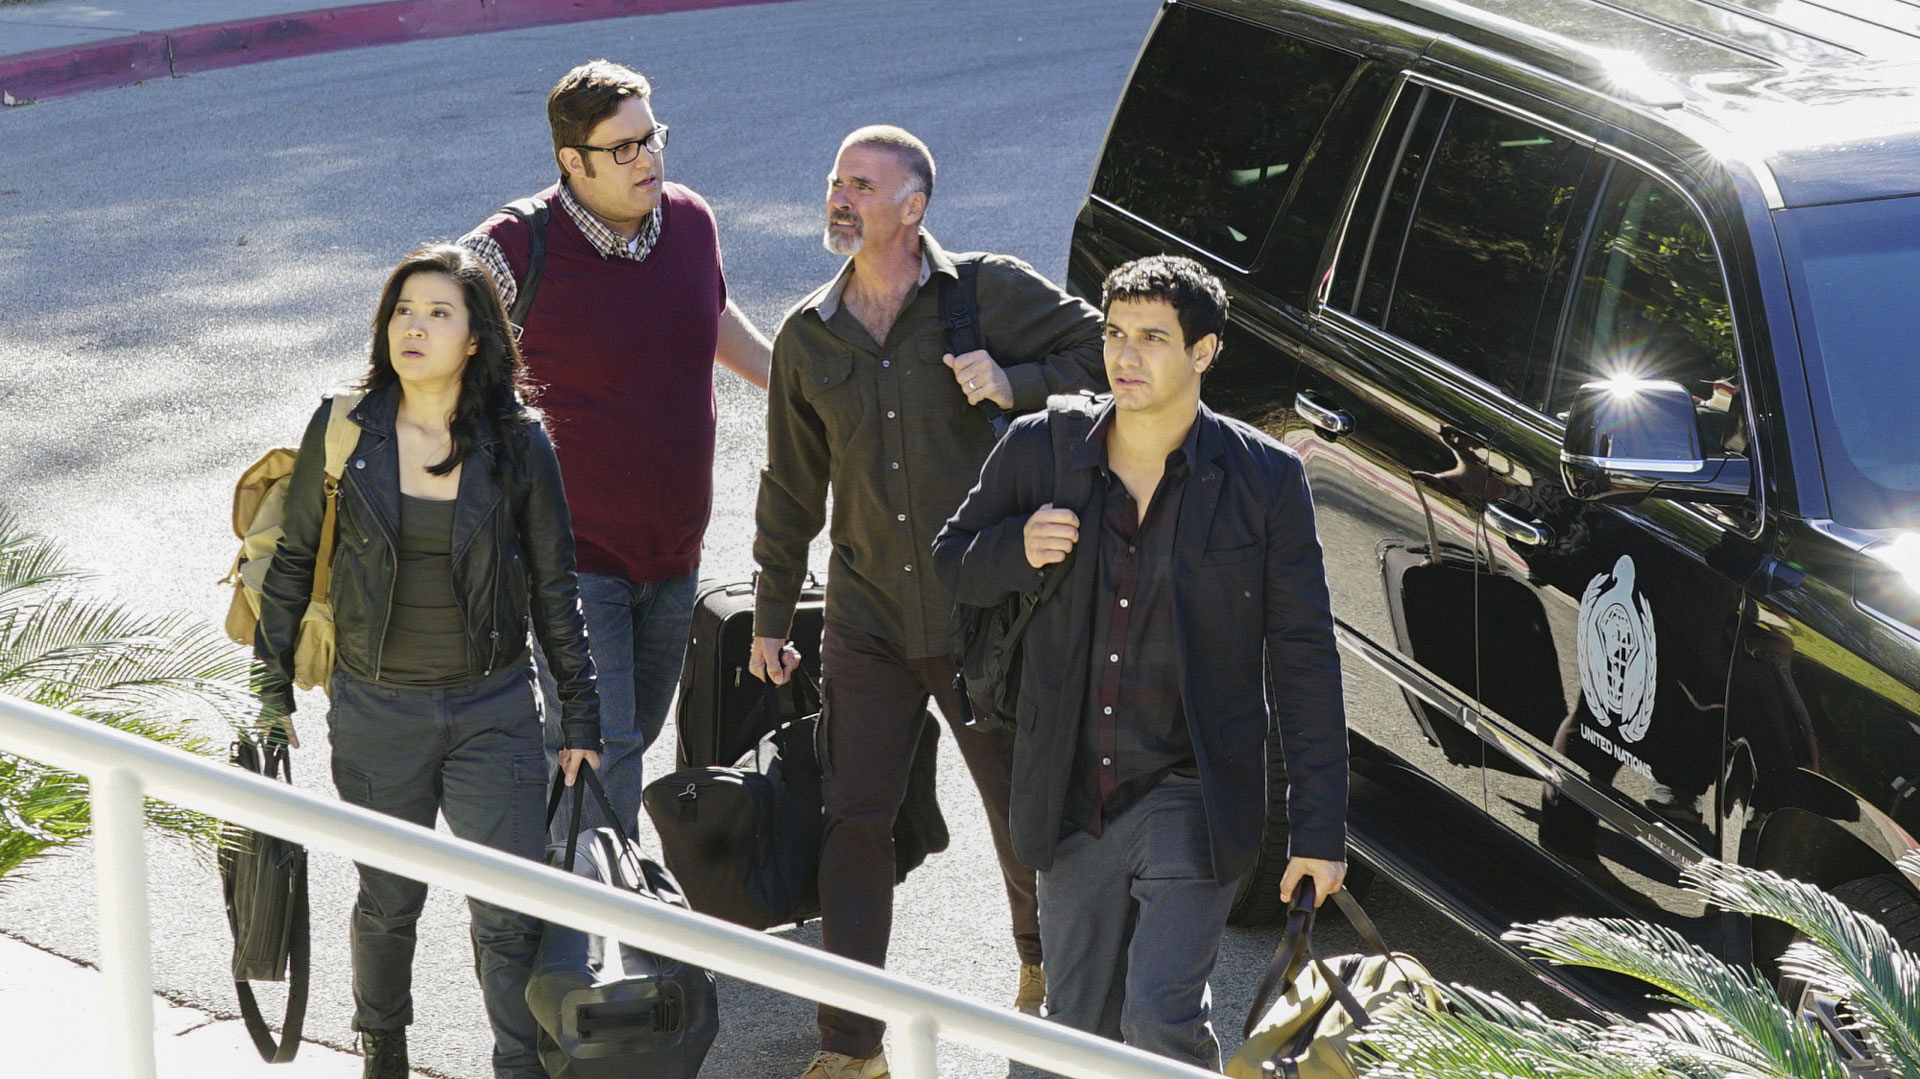 Jadyn Wong as Happy Quinn, Sylvester Dodd as Ari Stidham, Jeff Fahey as Kenneth Dodd, and Elyes Gabel as Walter O'Brien